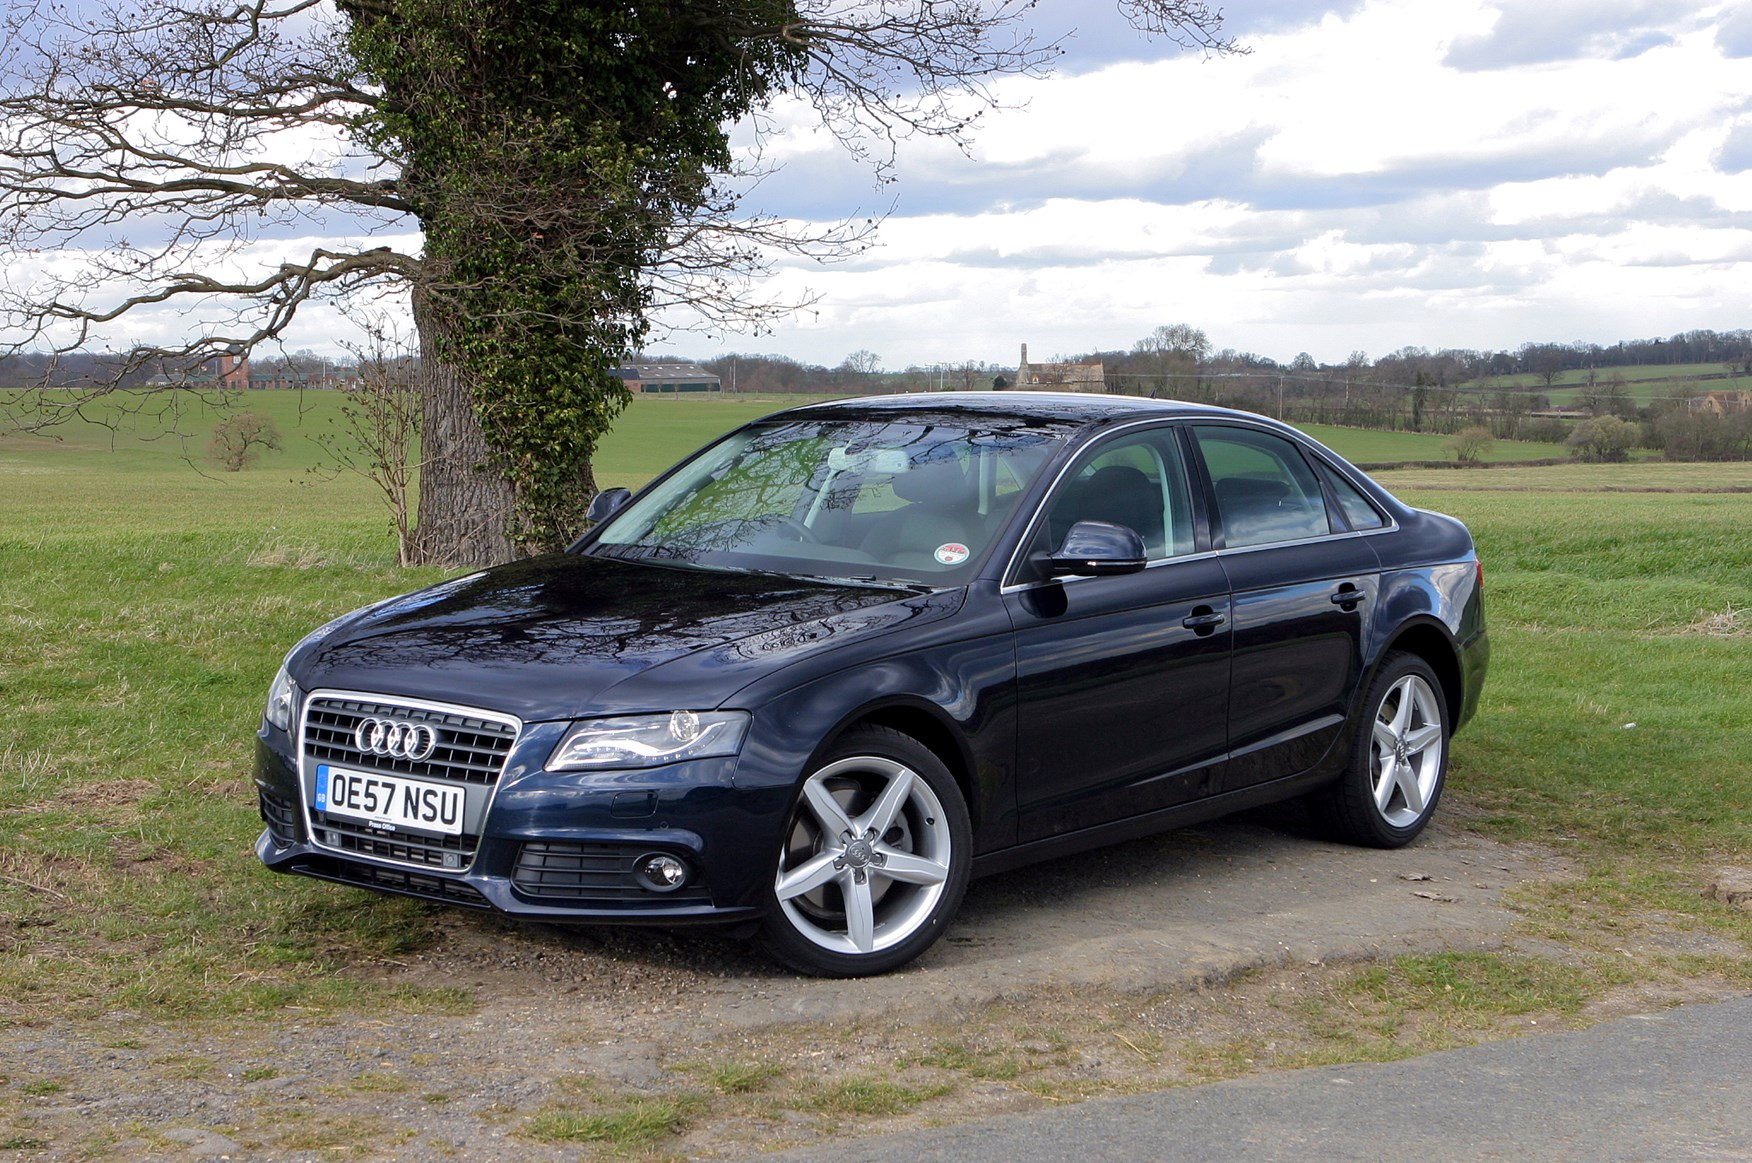 Audi A4 Saloon (2008 - 2015) Features, Equipment and Accessories | Parkers